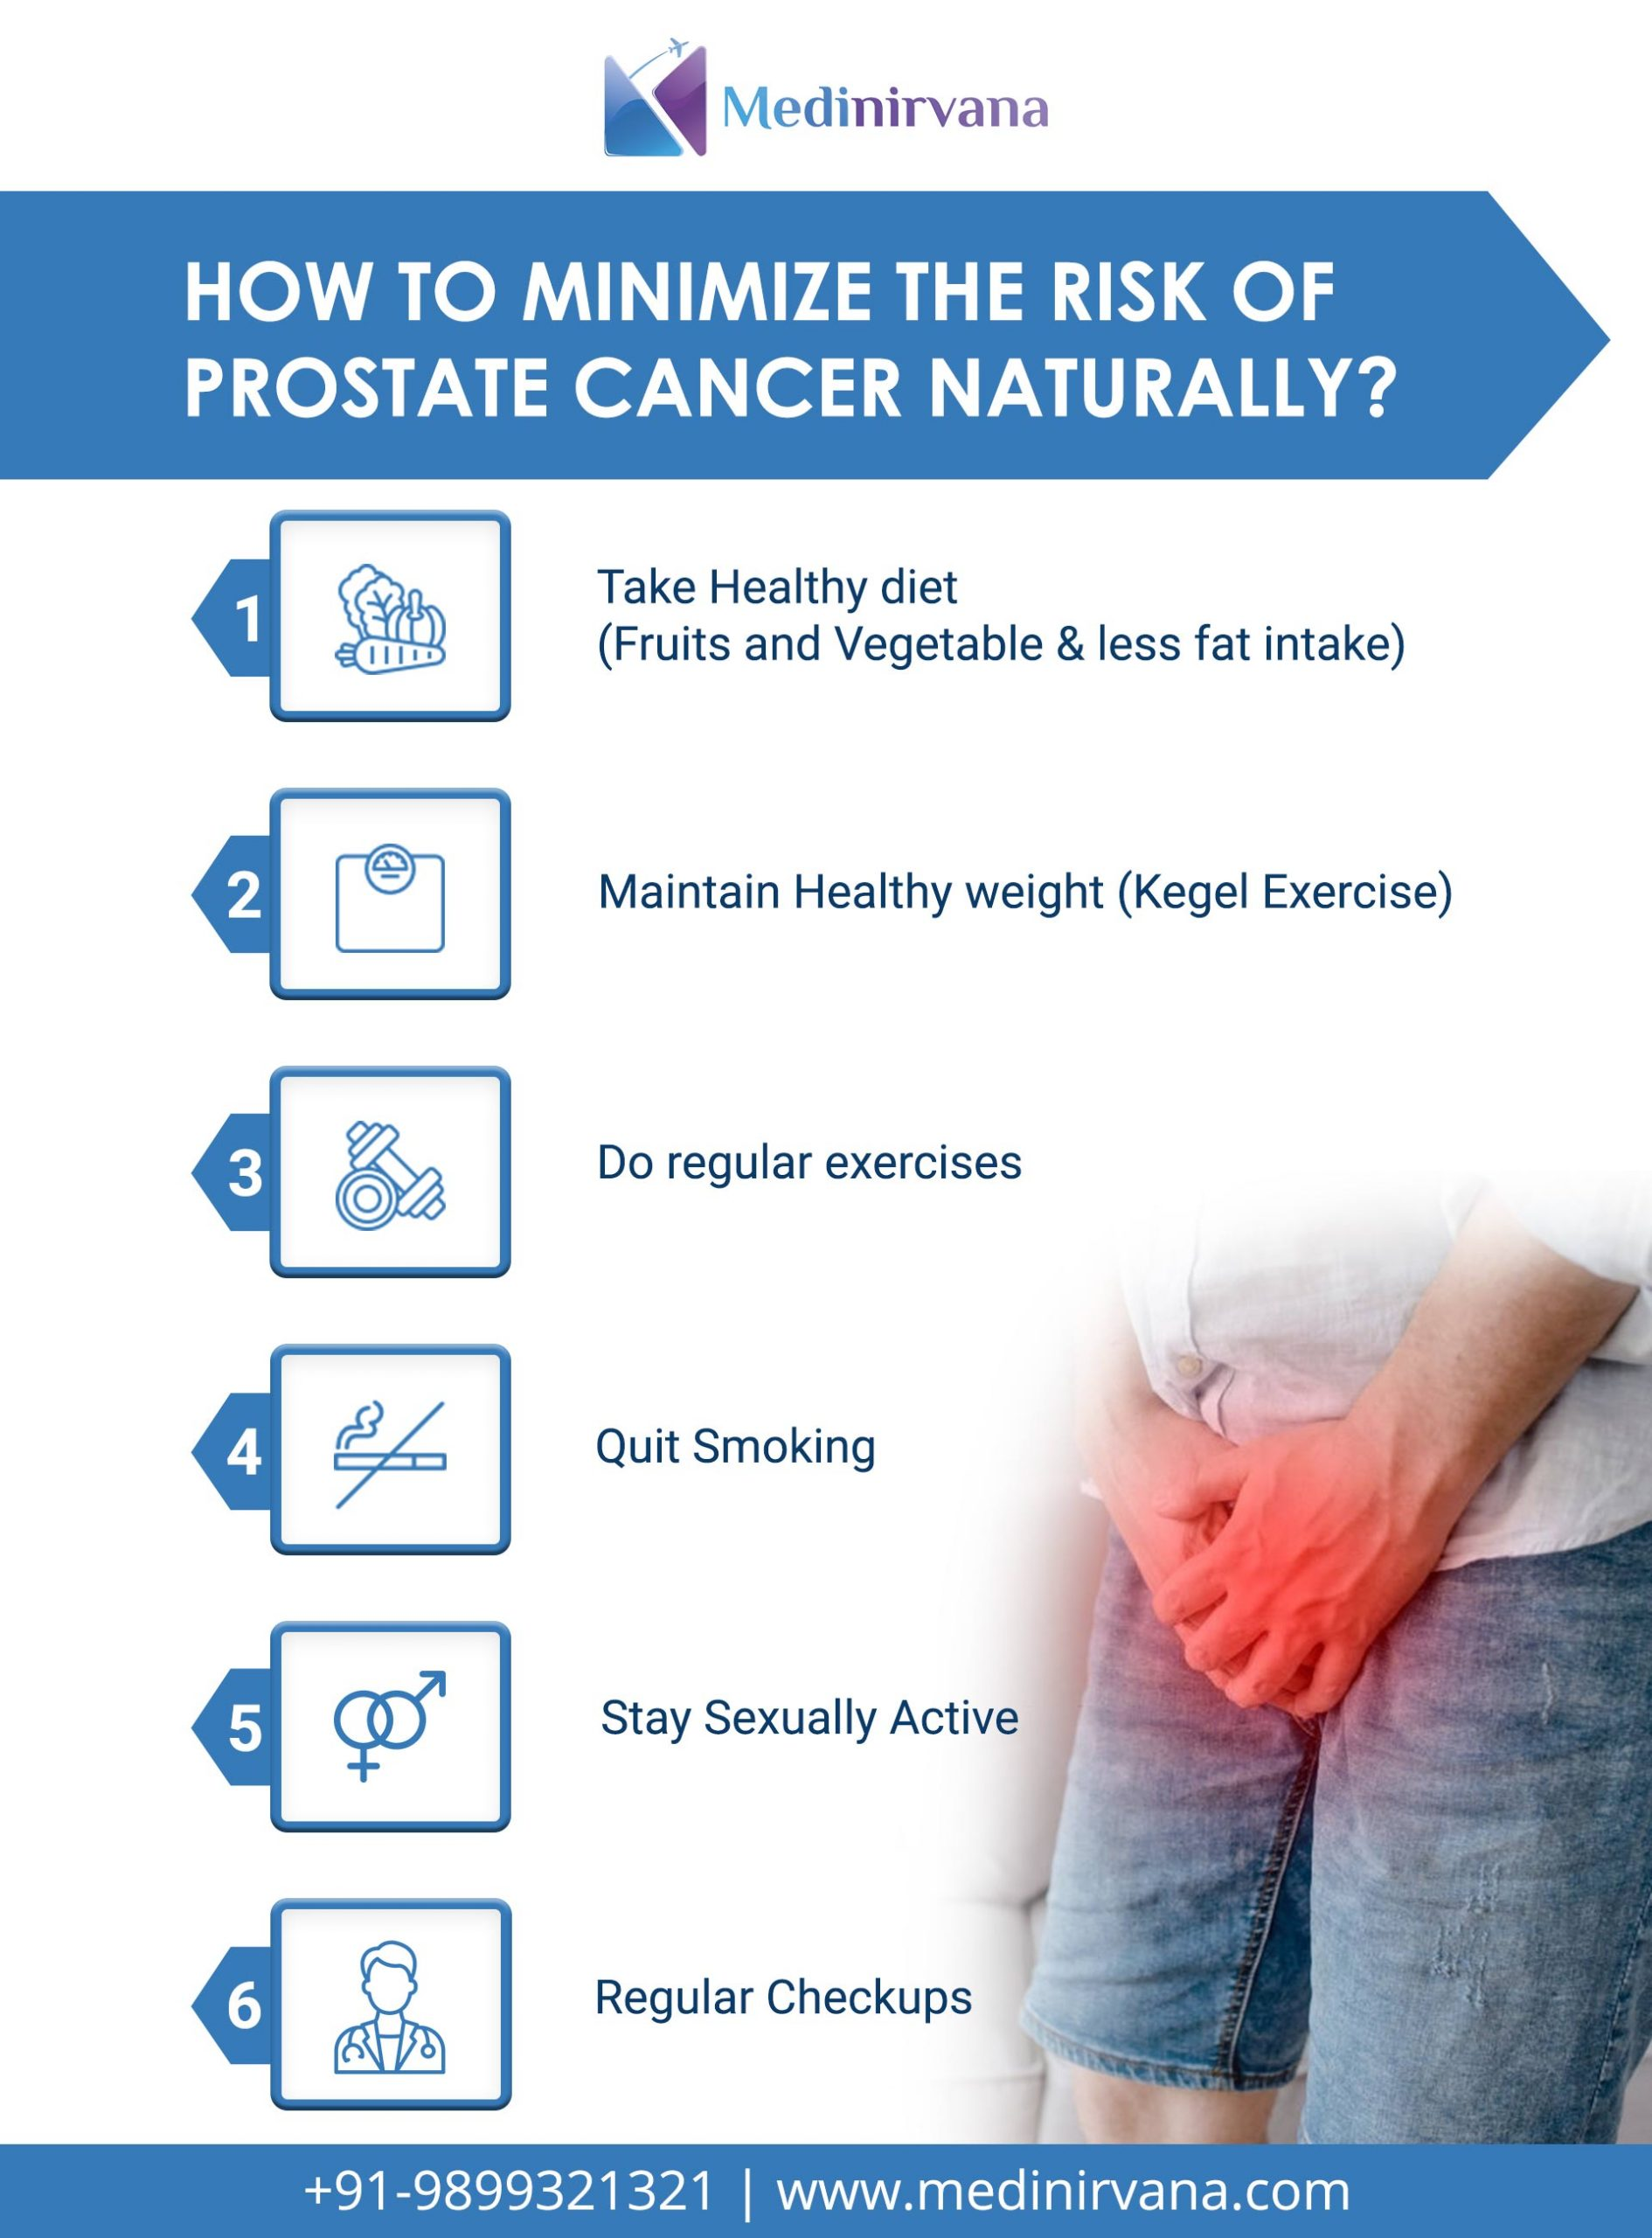 How to Minimize the Risk of Prostate Cancer